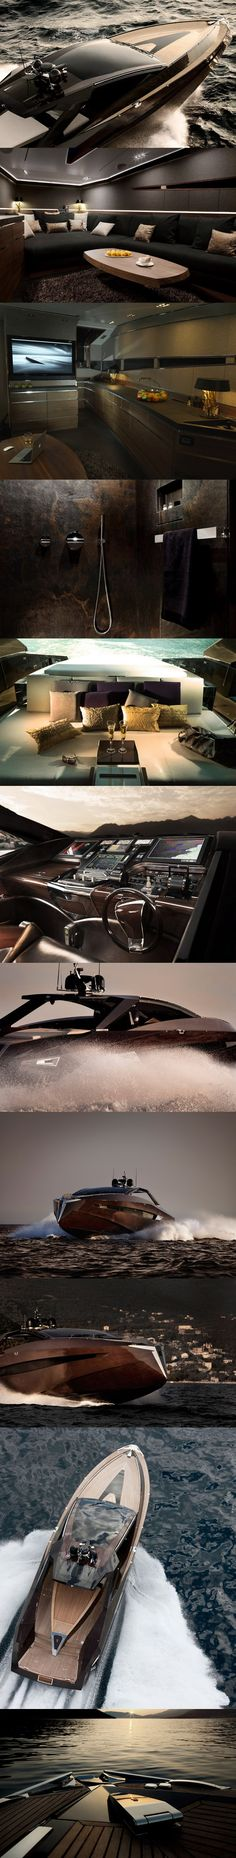 Art of Kinetik Hedonist #Yacht #luxury